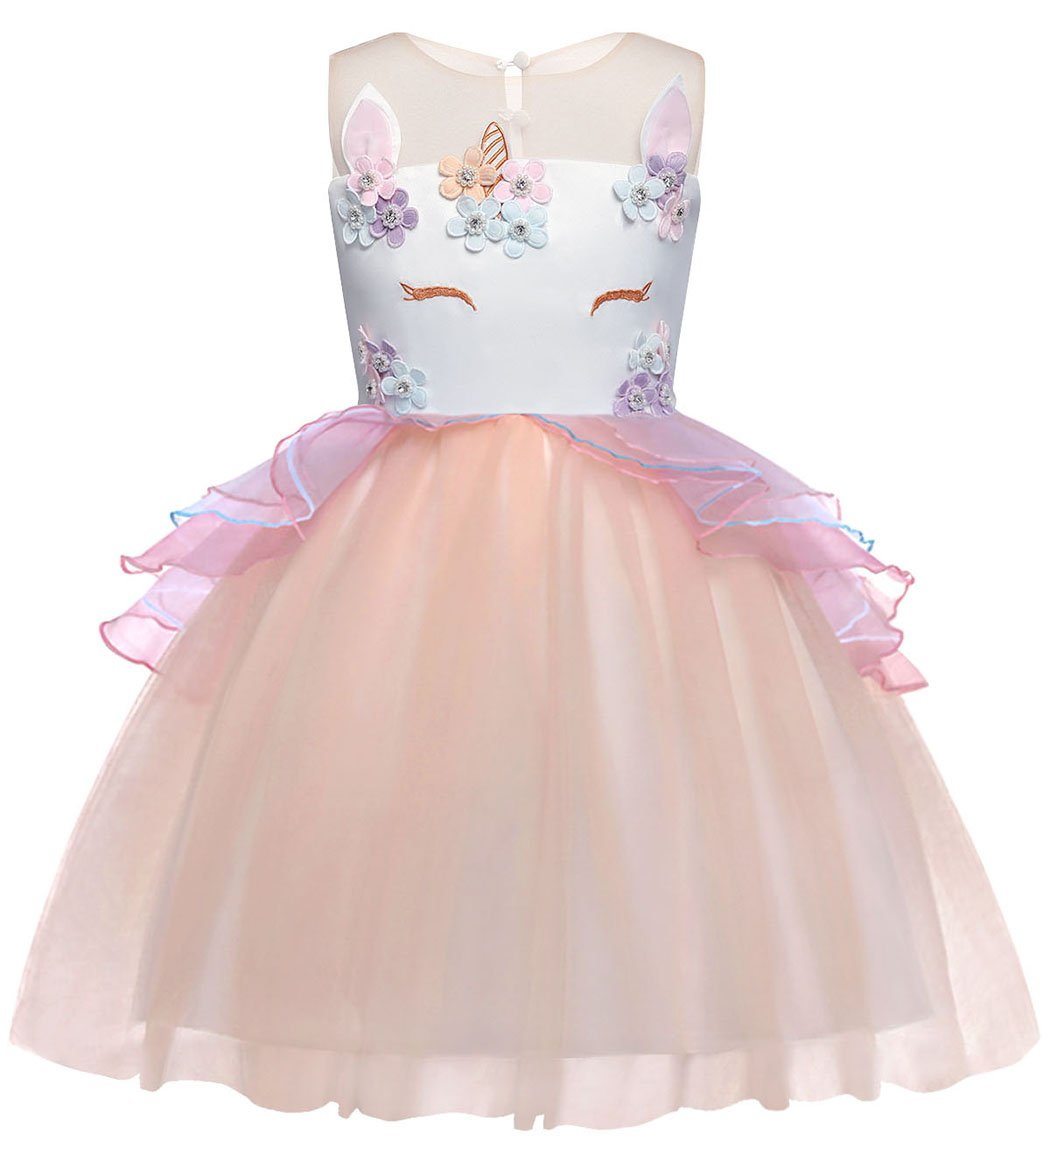 Cotrio Baby Girls Unicorn Costume Dress Pageant Party Dresses Flower Evening Gowns Tutu Dress Size 6 (5-6Yrs, Pink)